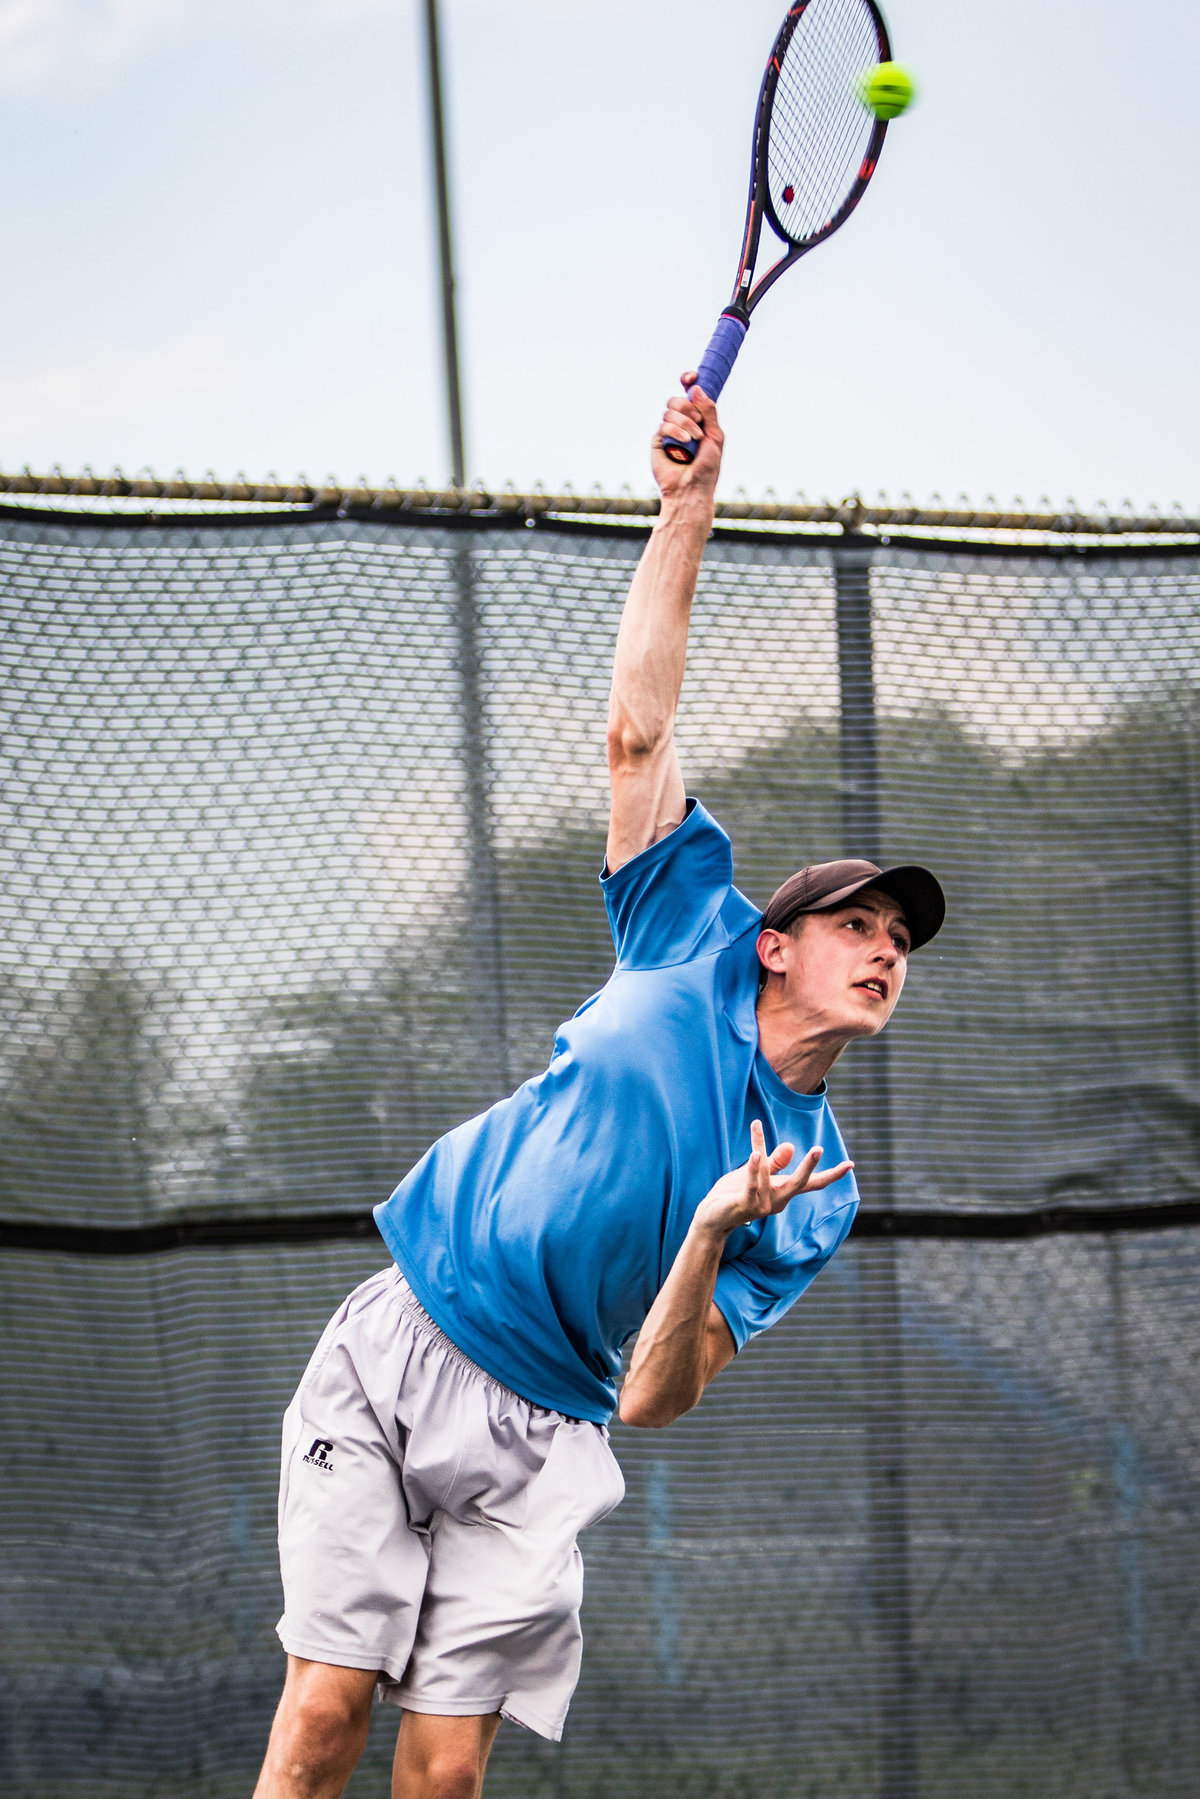 Hall-Potvin Photography Vermont Tennis Sports Photographer-16